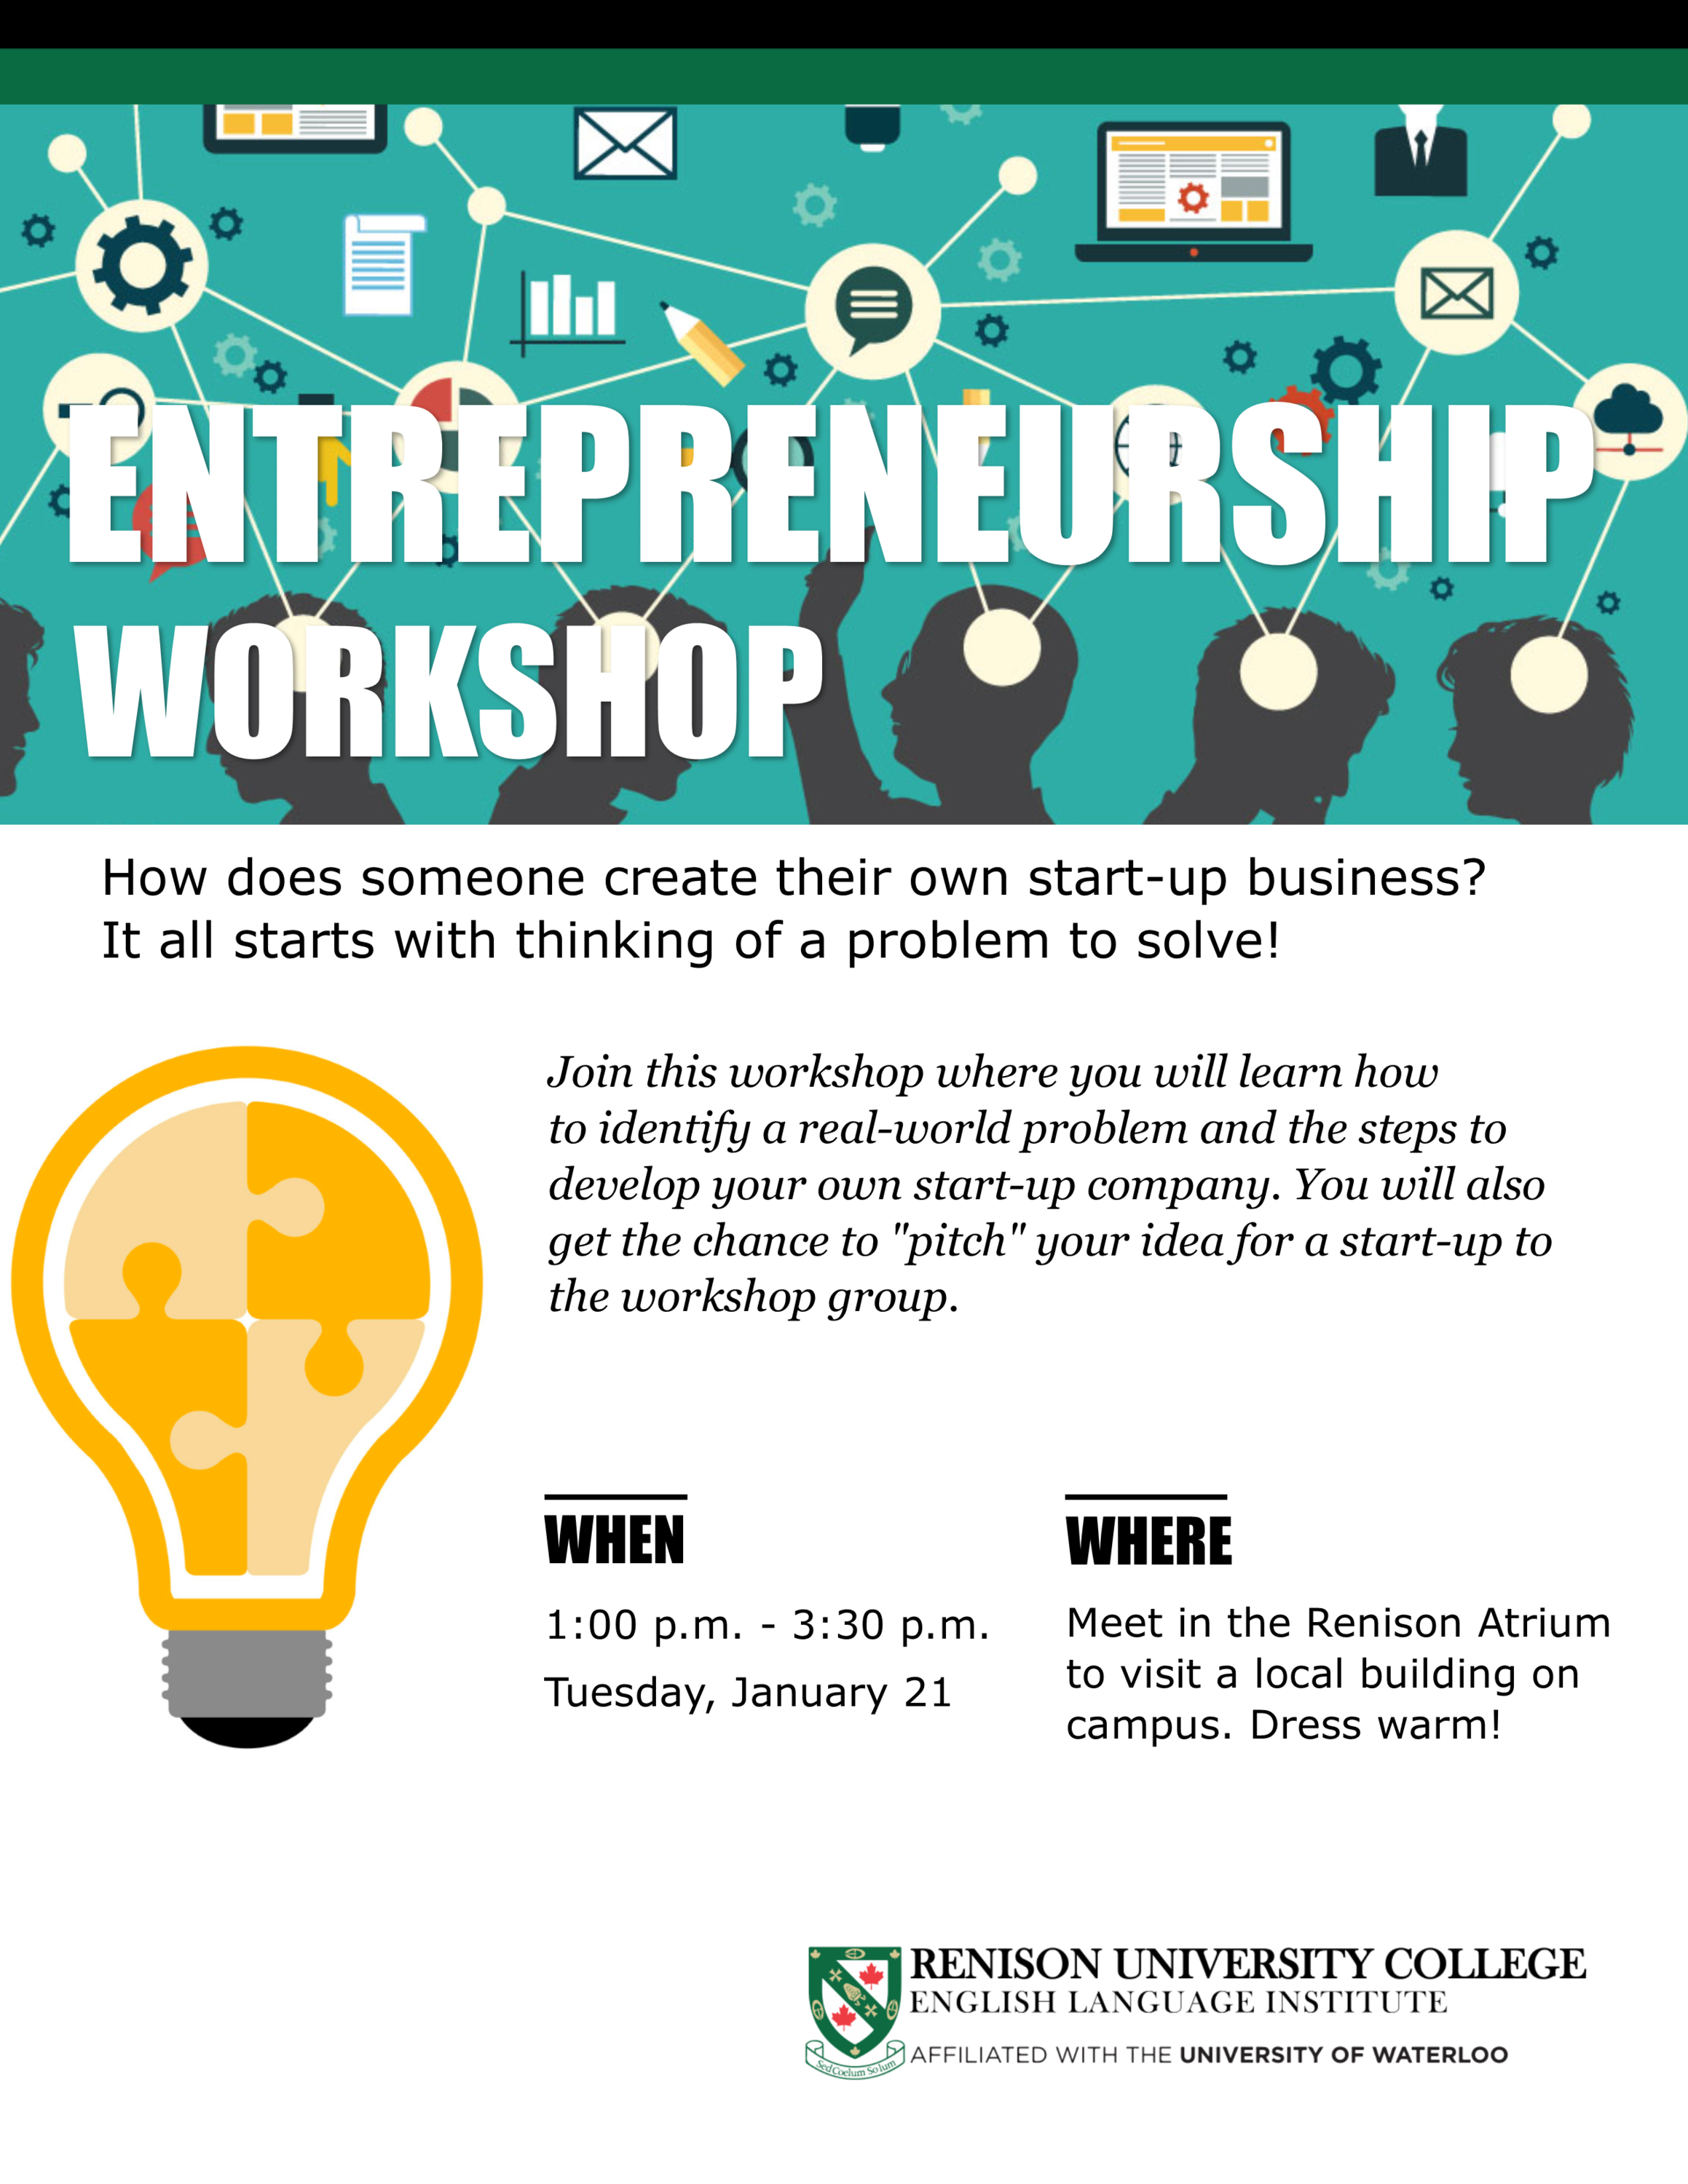 A poster for the entrepreneurship workshop that is on January 21, 2020